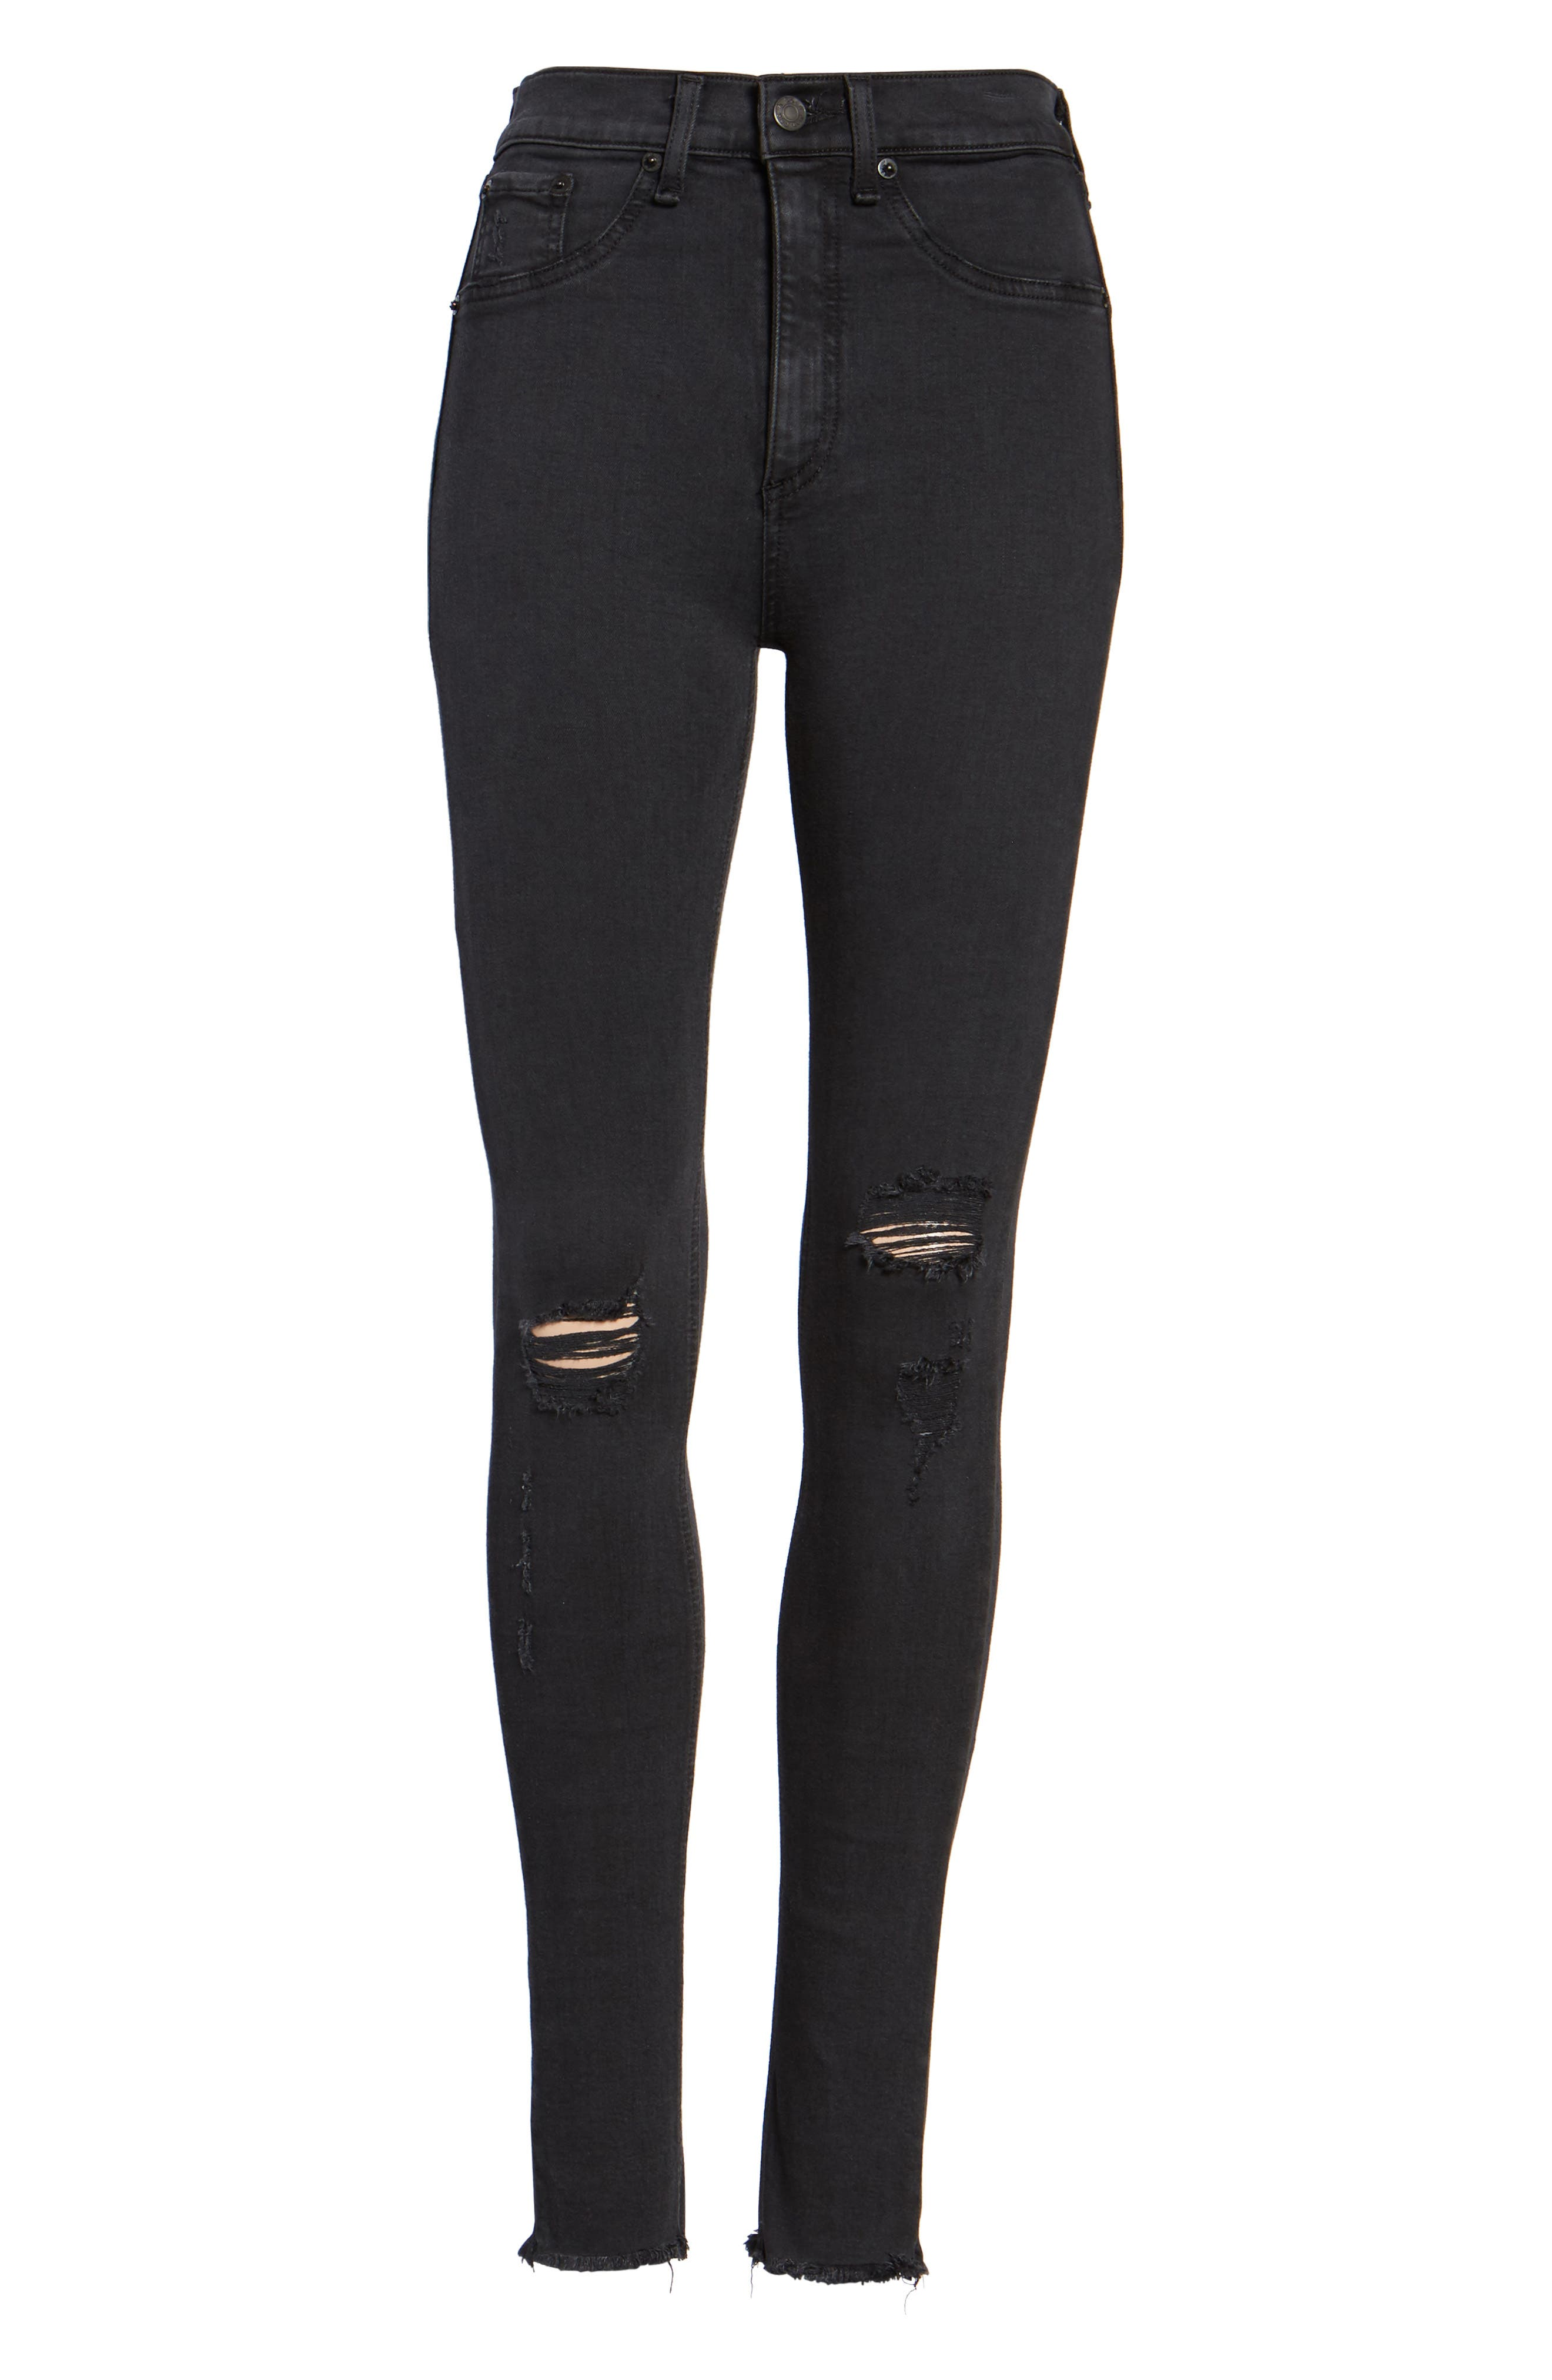 Ripped High Waist Skinny Jeans,                             Alternate thumbnail 7, color,                             001